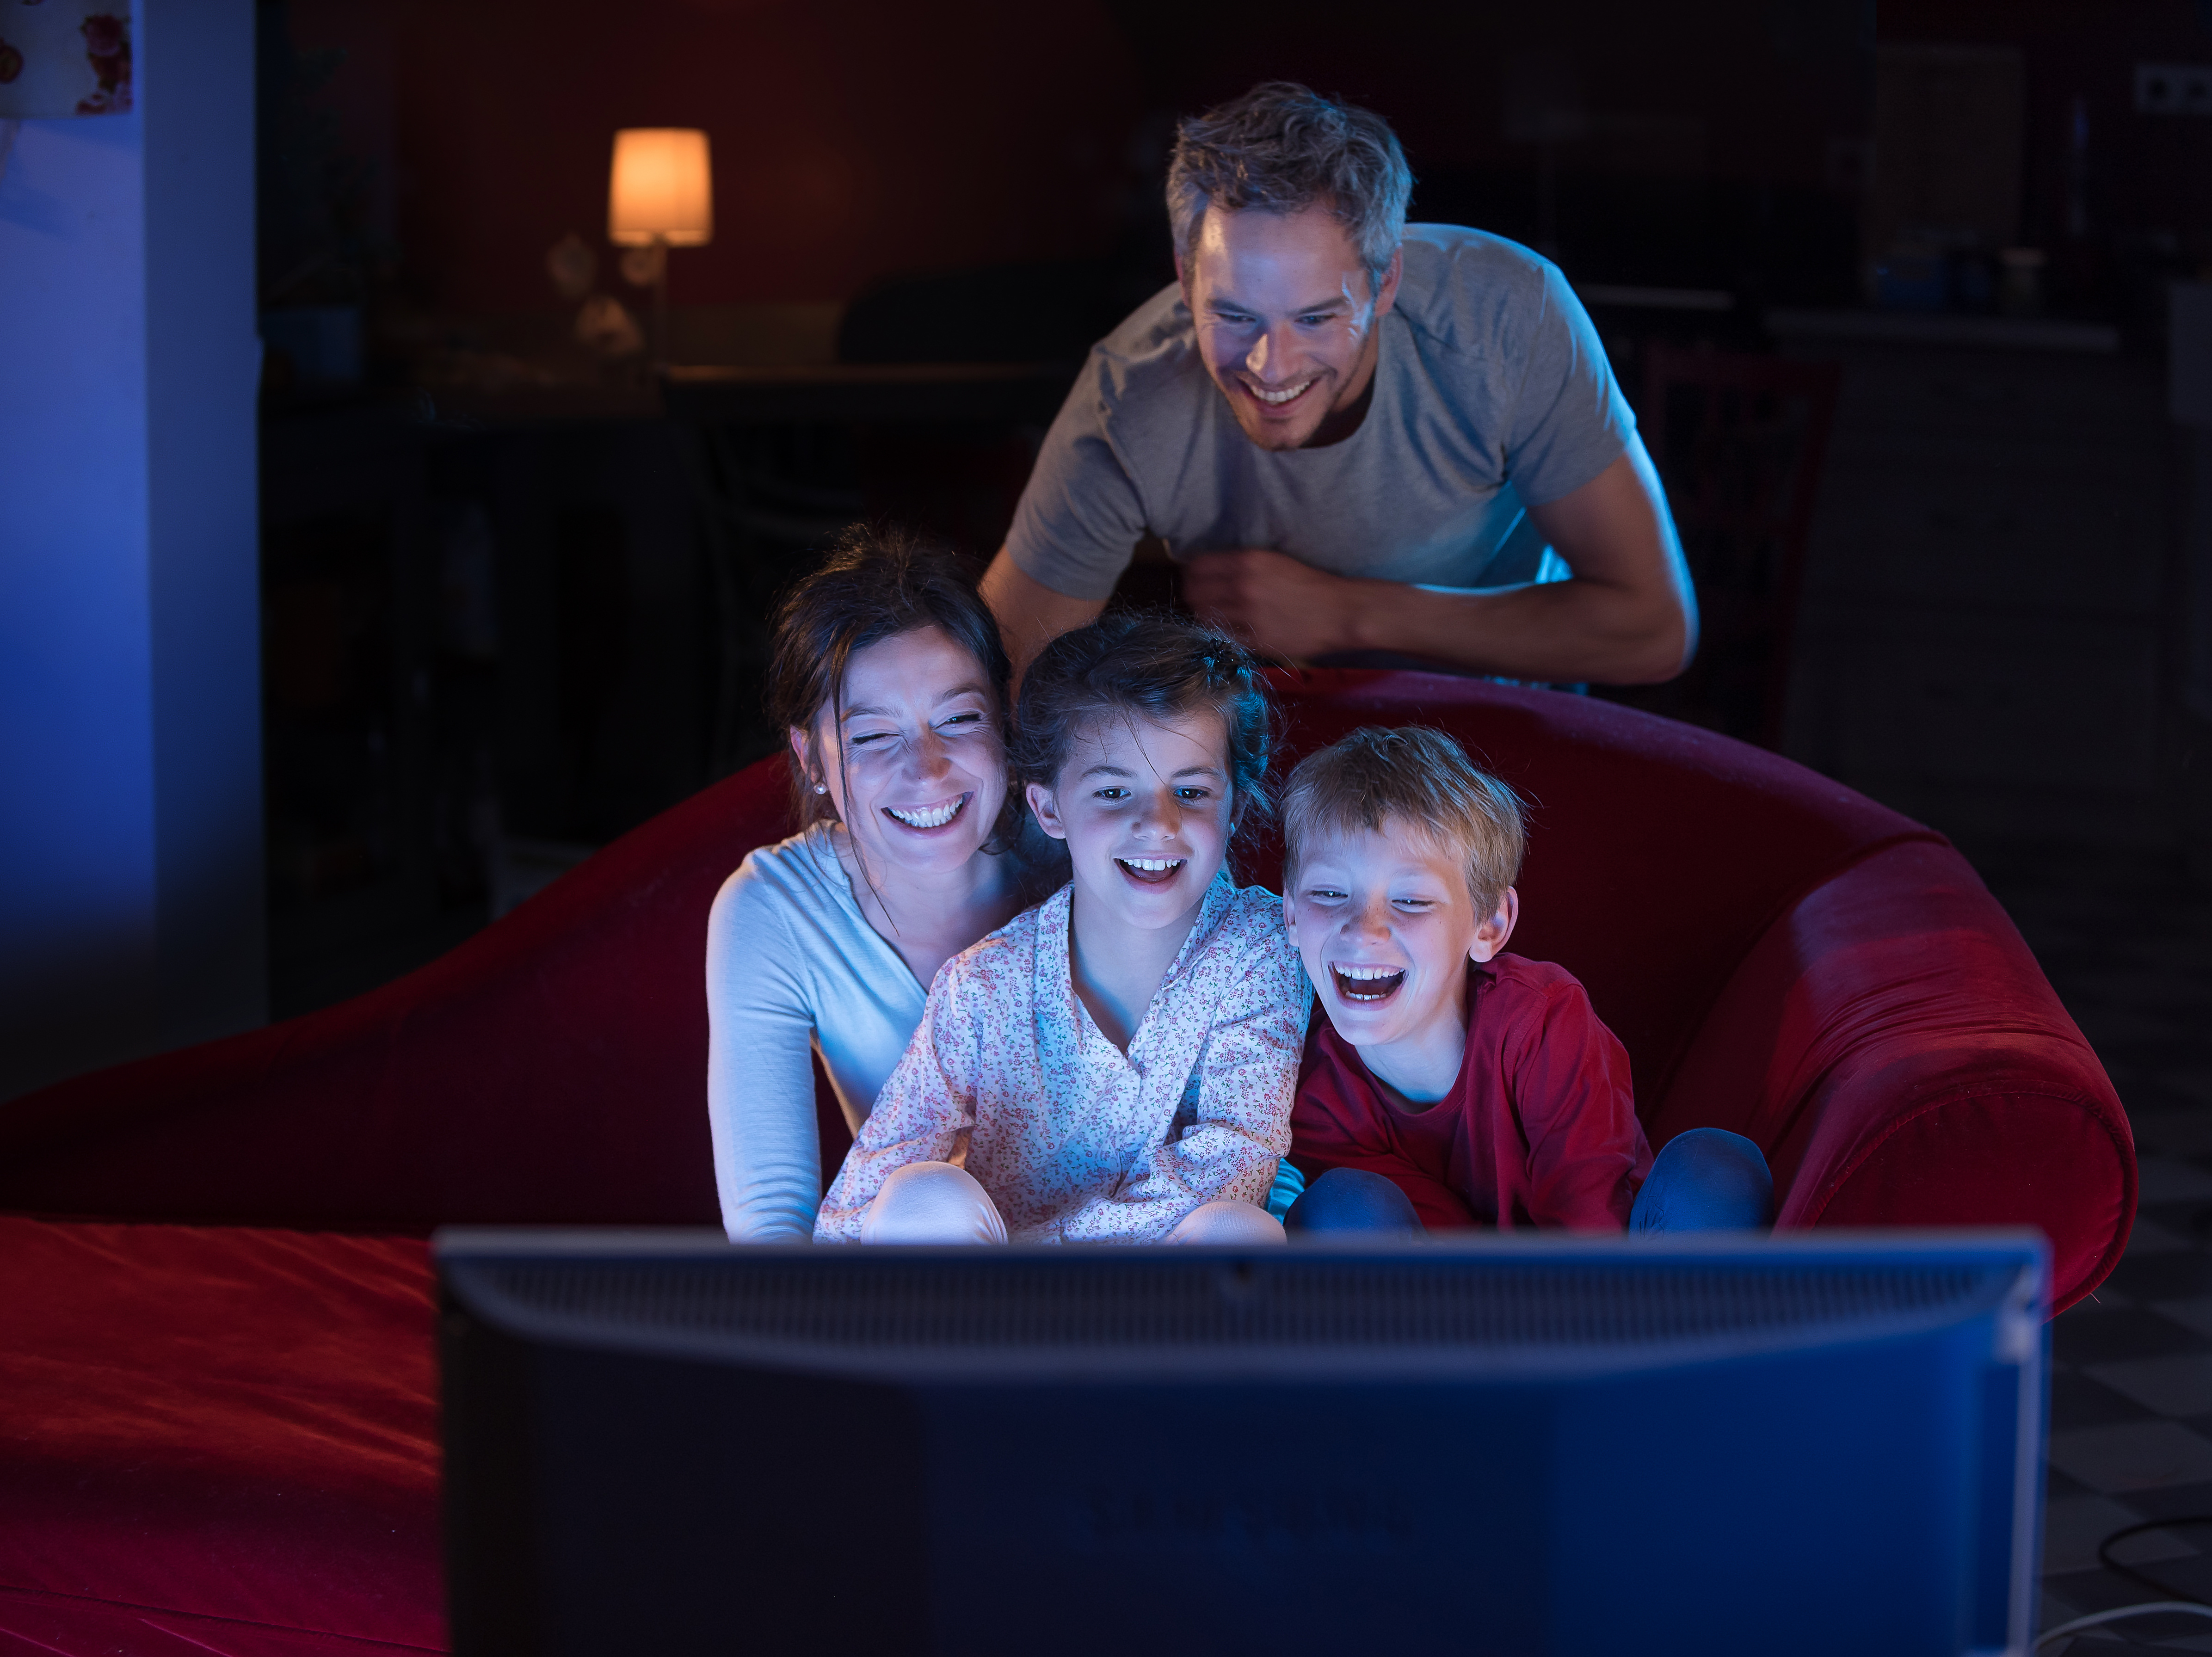 At home by night, a family watching a funny movie on tv.